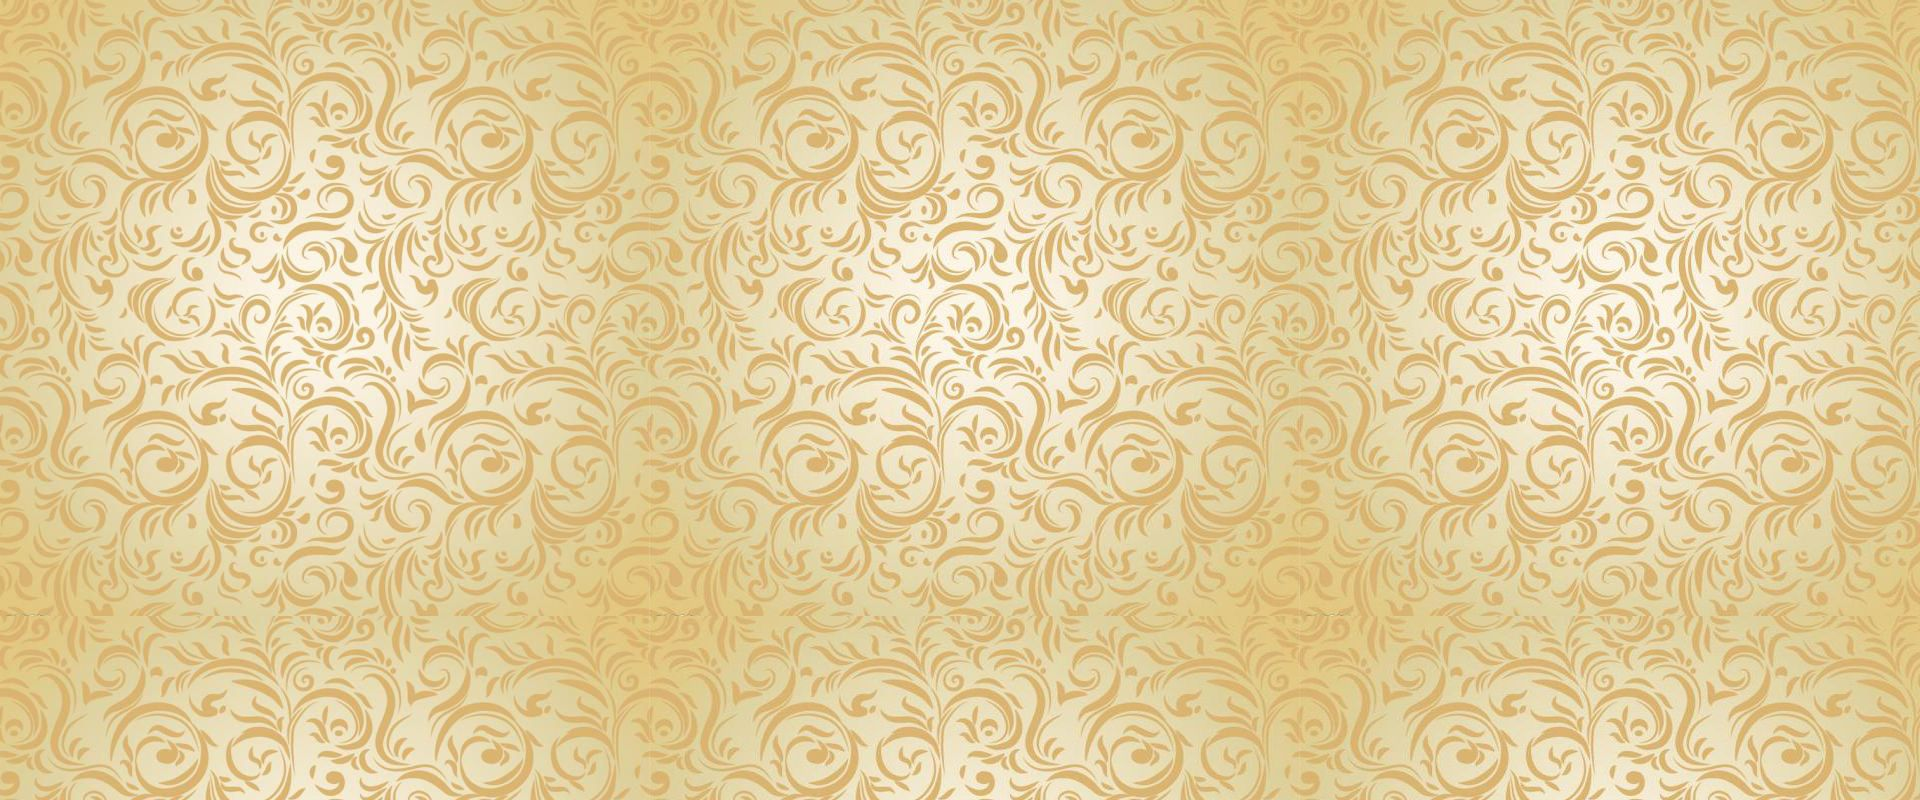 Golden European Pattern Background Material Texture Poster Background Patterns Free Background Photos Gold Circle Wall Decals